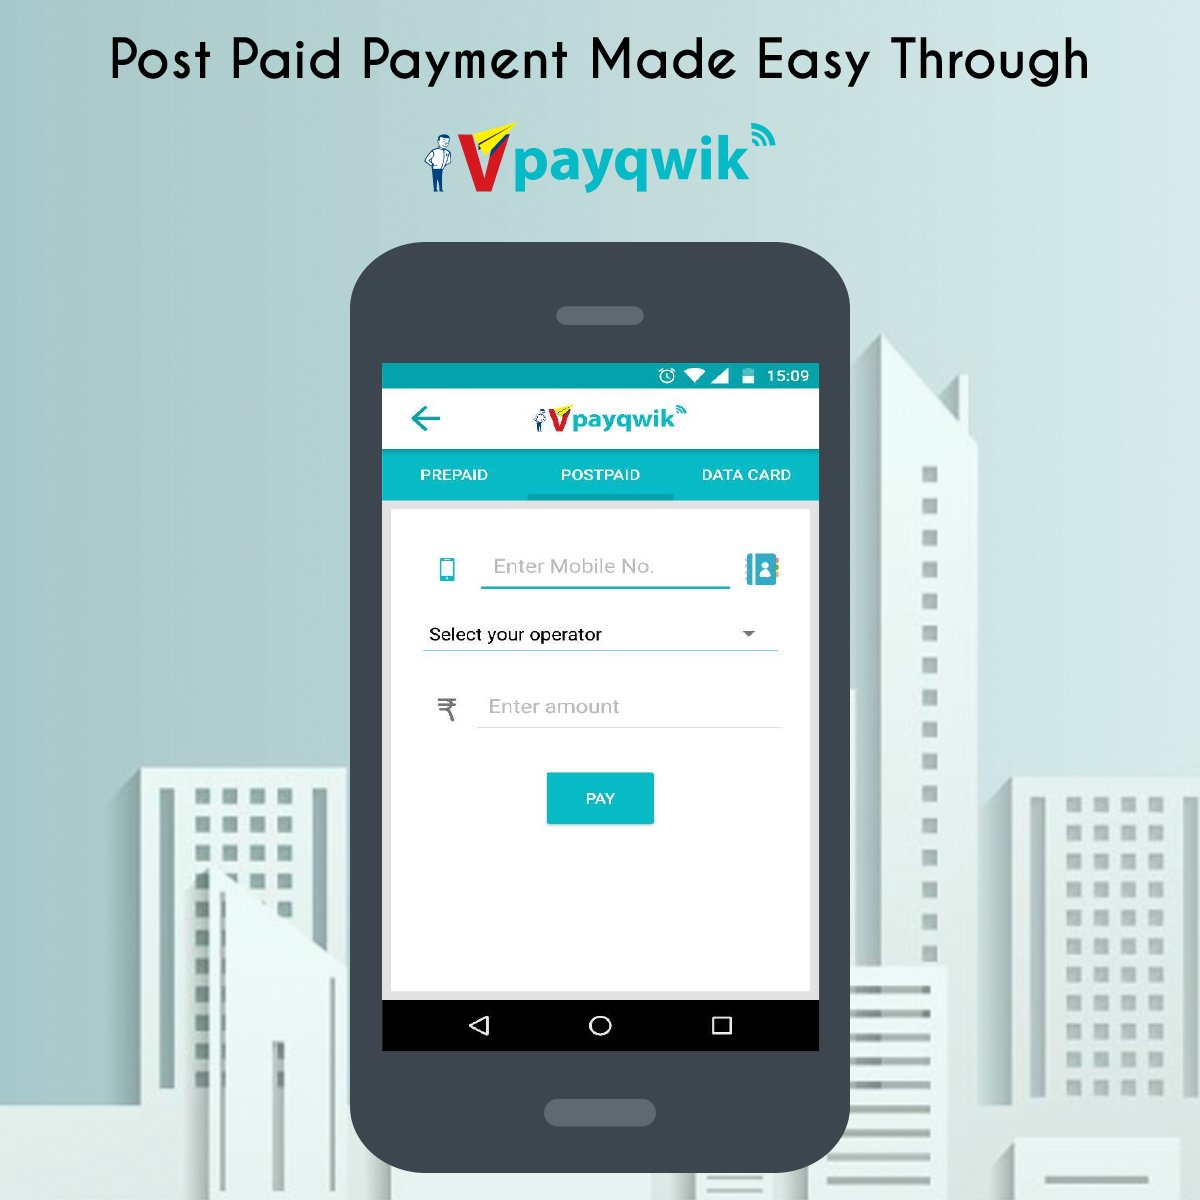 VPayQwik enables you to pay your Post Paid Phone Bills with ease! Download the app now.  #PostPaid #DigitalWallet #trust #DigitalIndia<br>http://pic.twitter.com/Lpt6QHdGLK